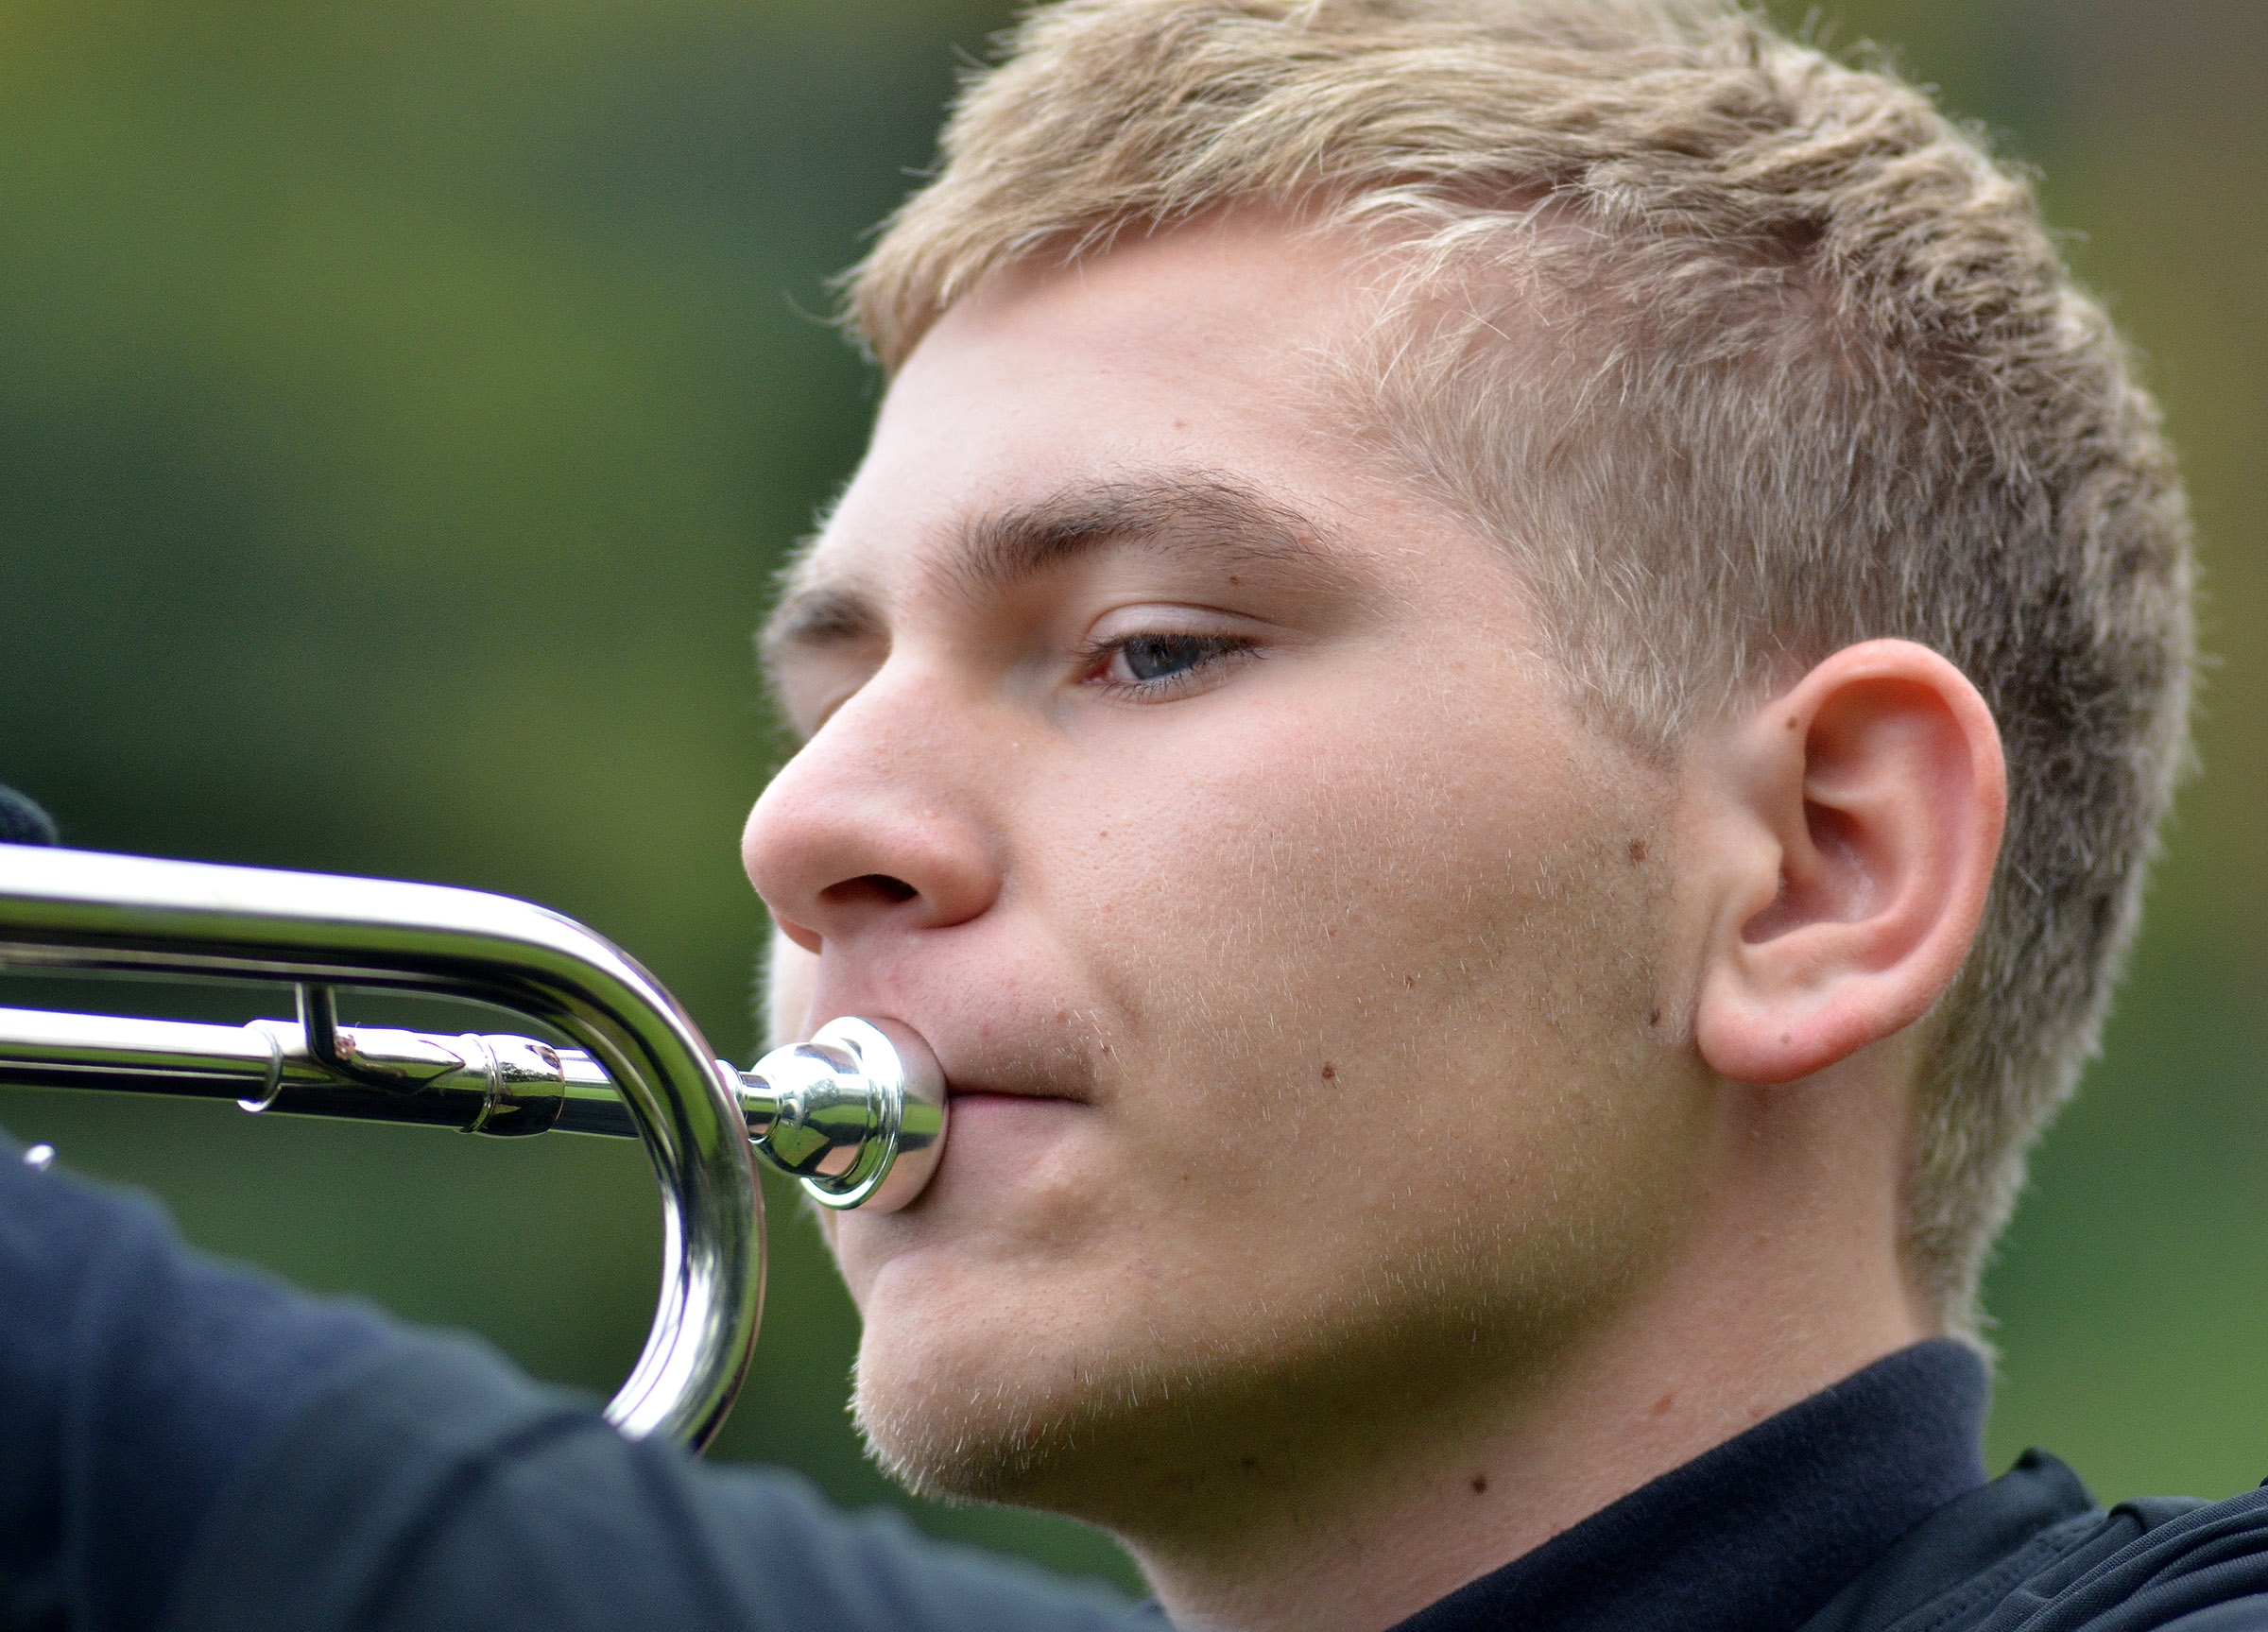 CHS junior Brandon Greer plays trumpet in semi-finals competition.